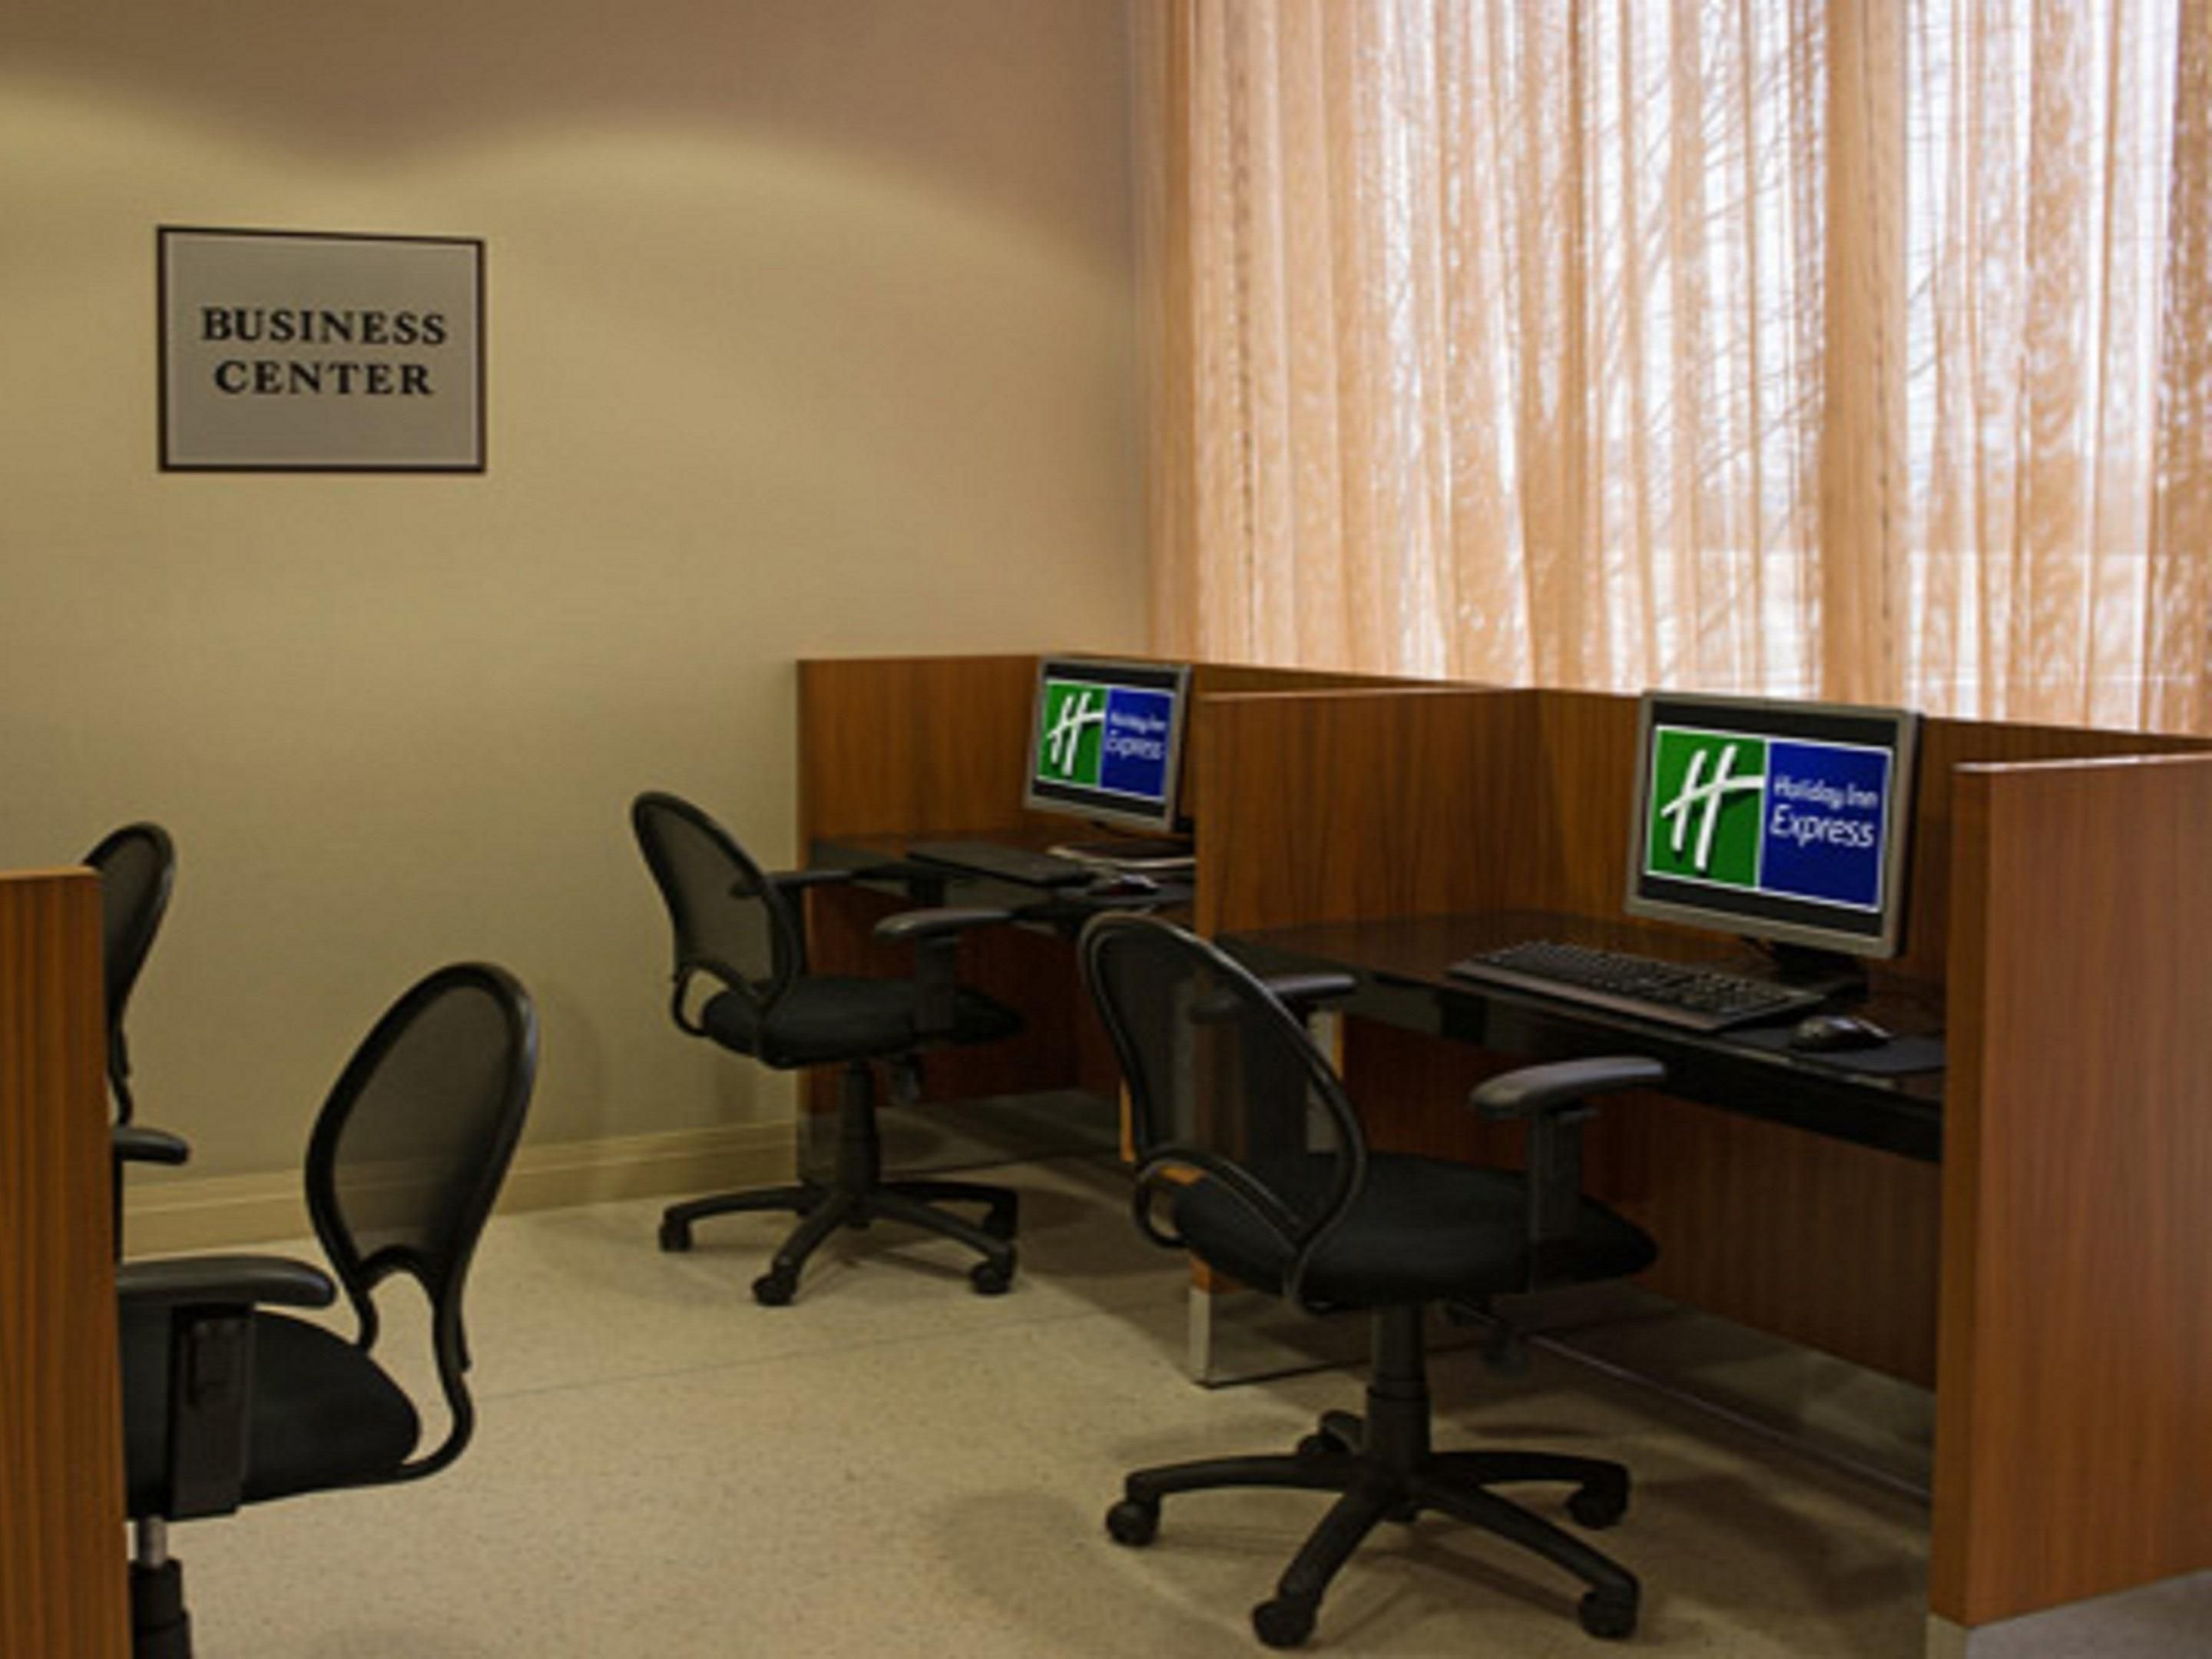 Holiday Inn Express 24-hour Business Center with WIFI and printer